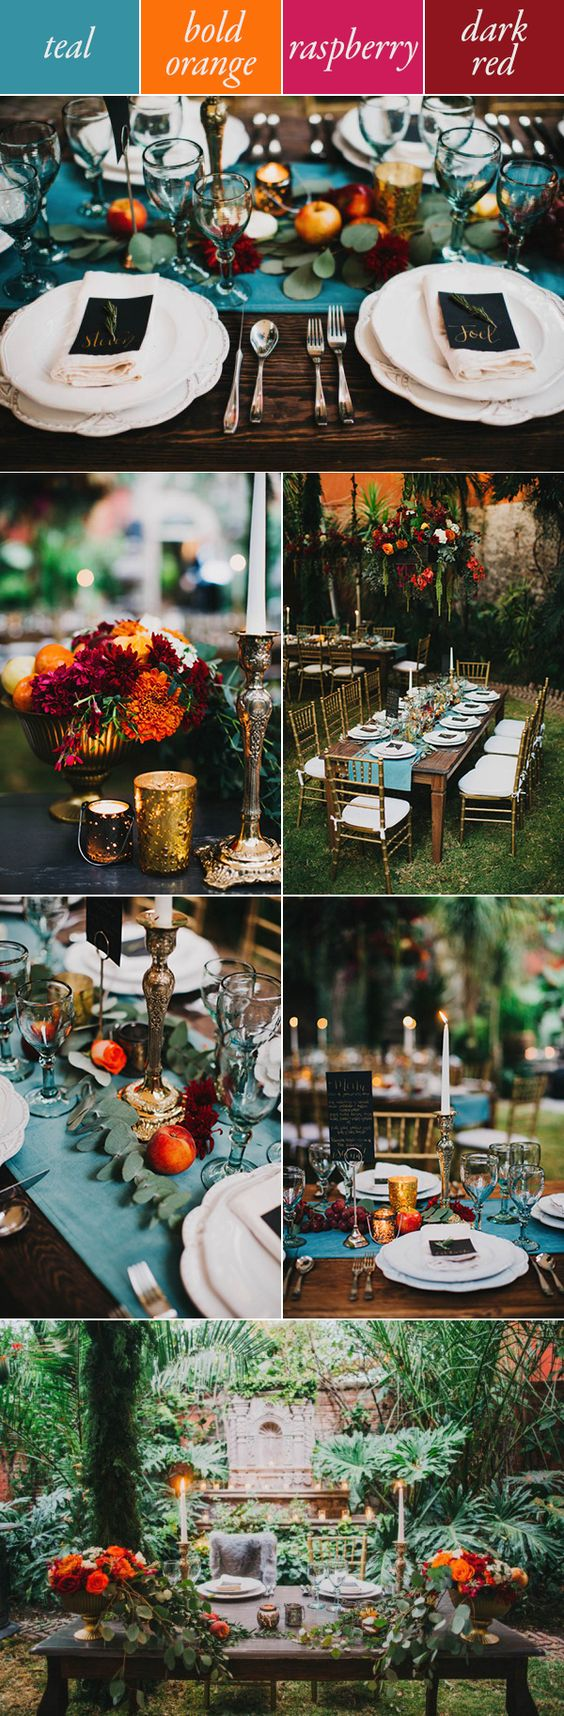 Teal, orange, pink, and red make a warm fall combination   Blest Studios